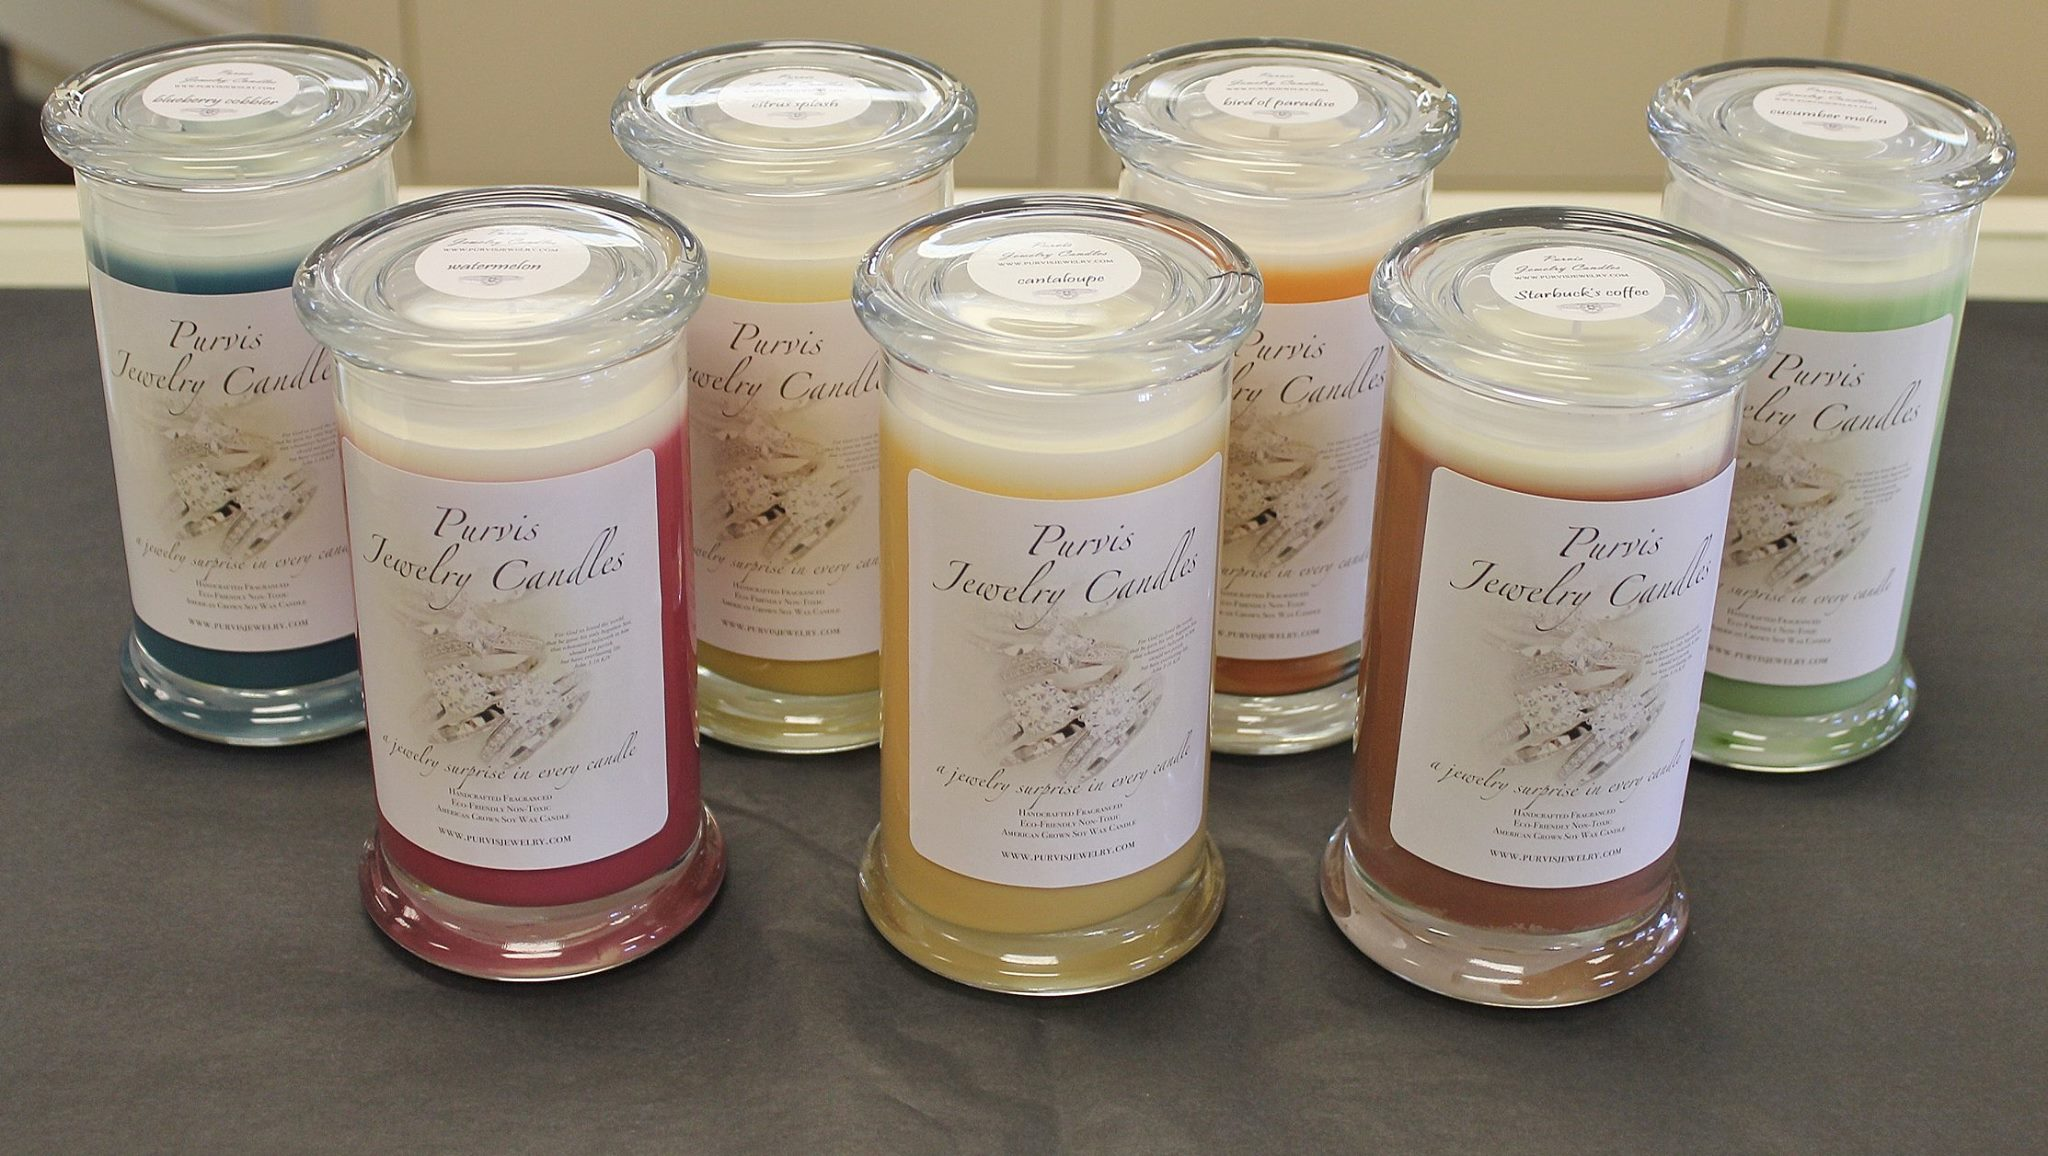 Purvis Jewelry Candles Candle Levels Ring Value Locations